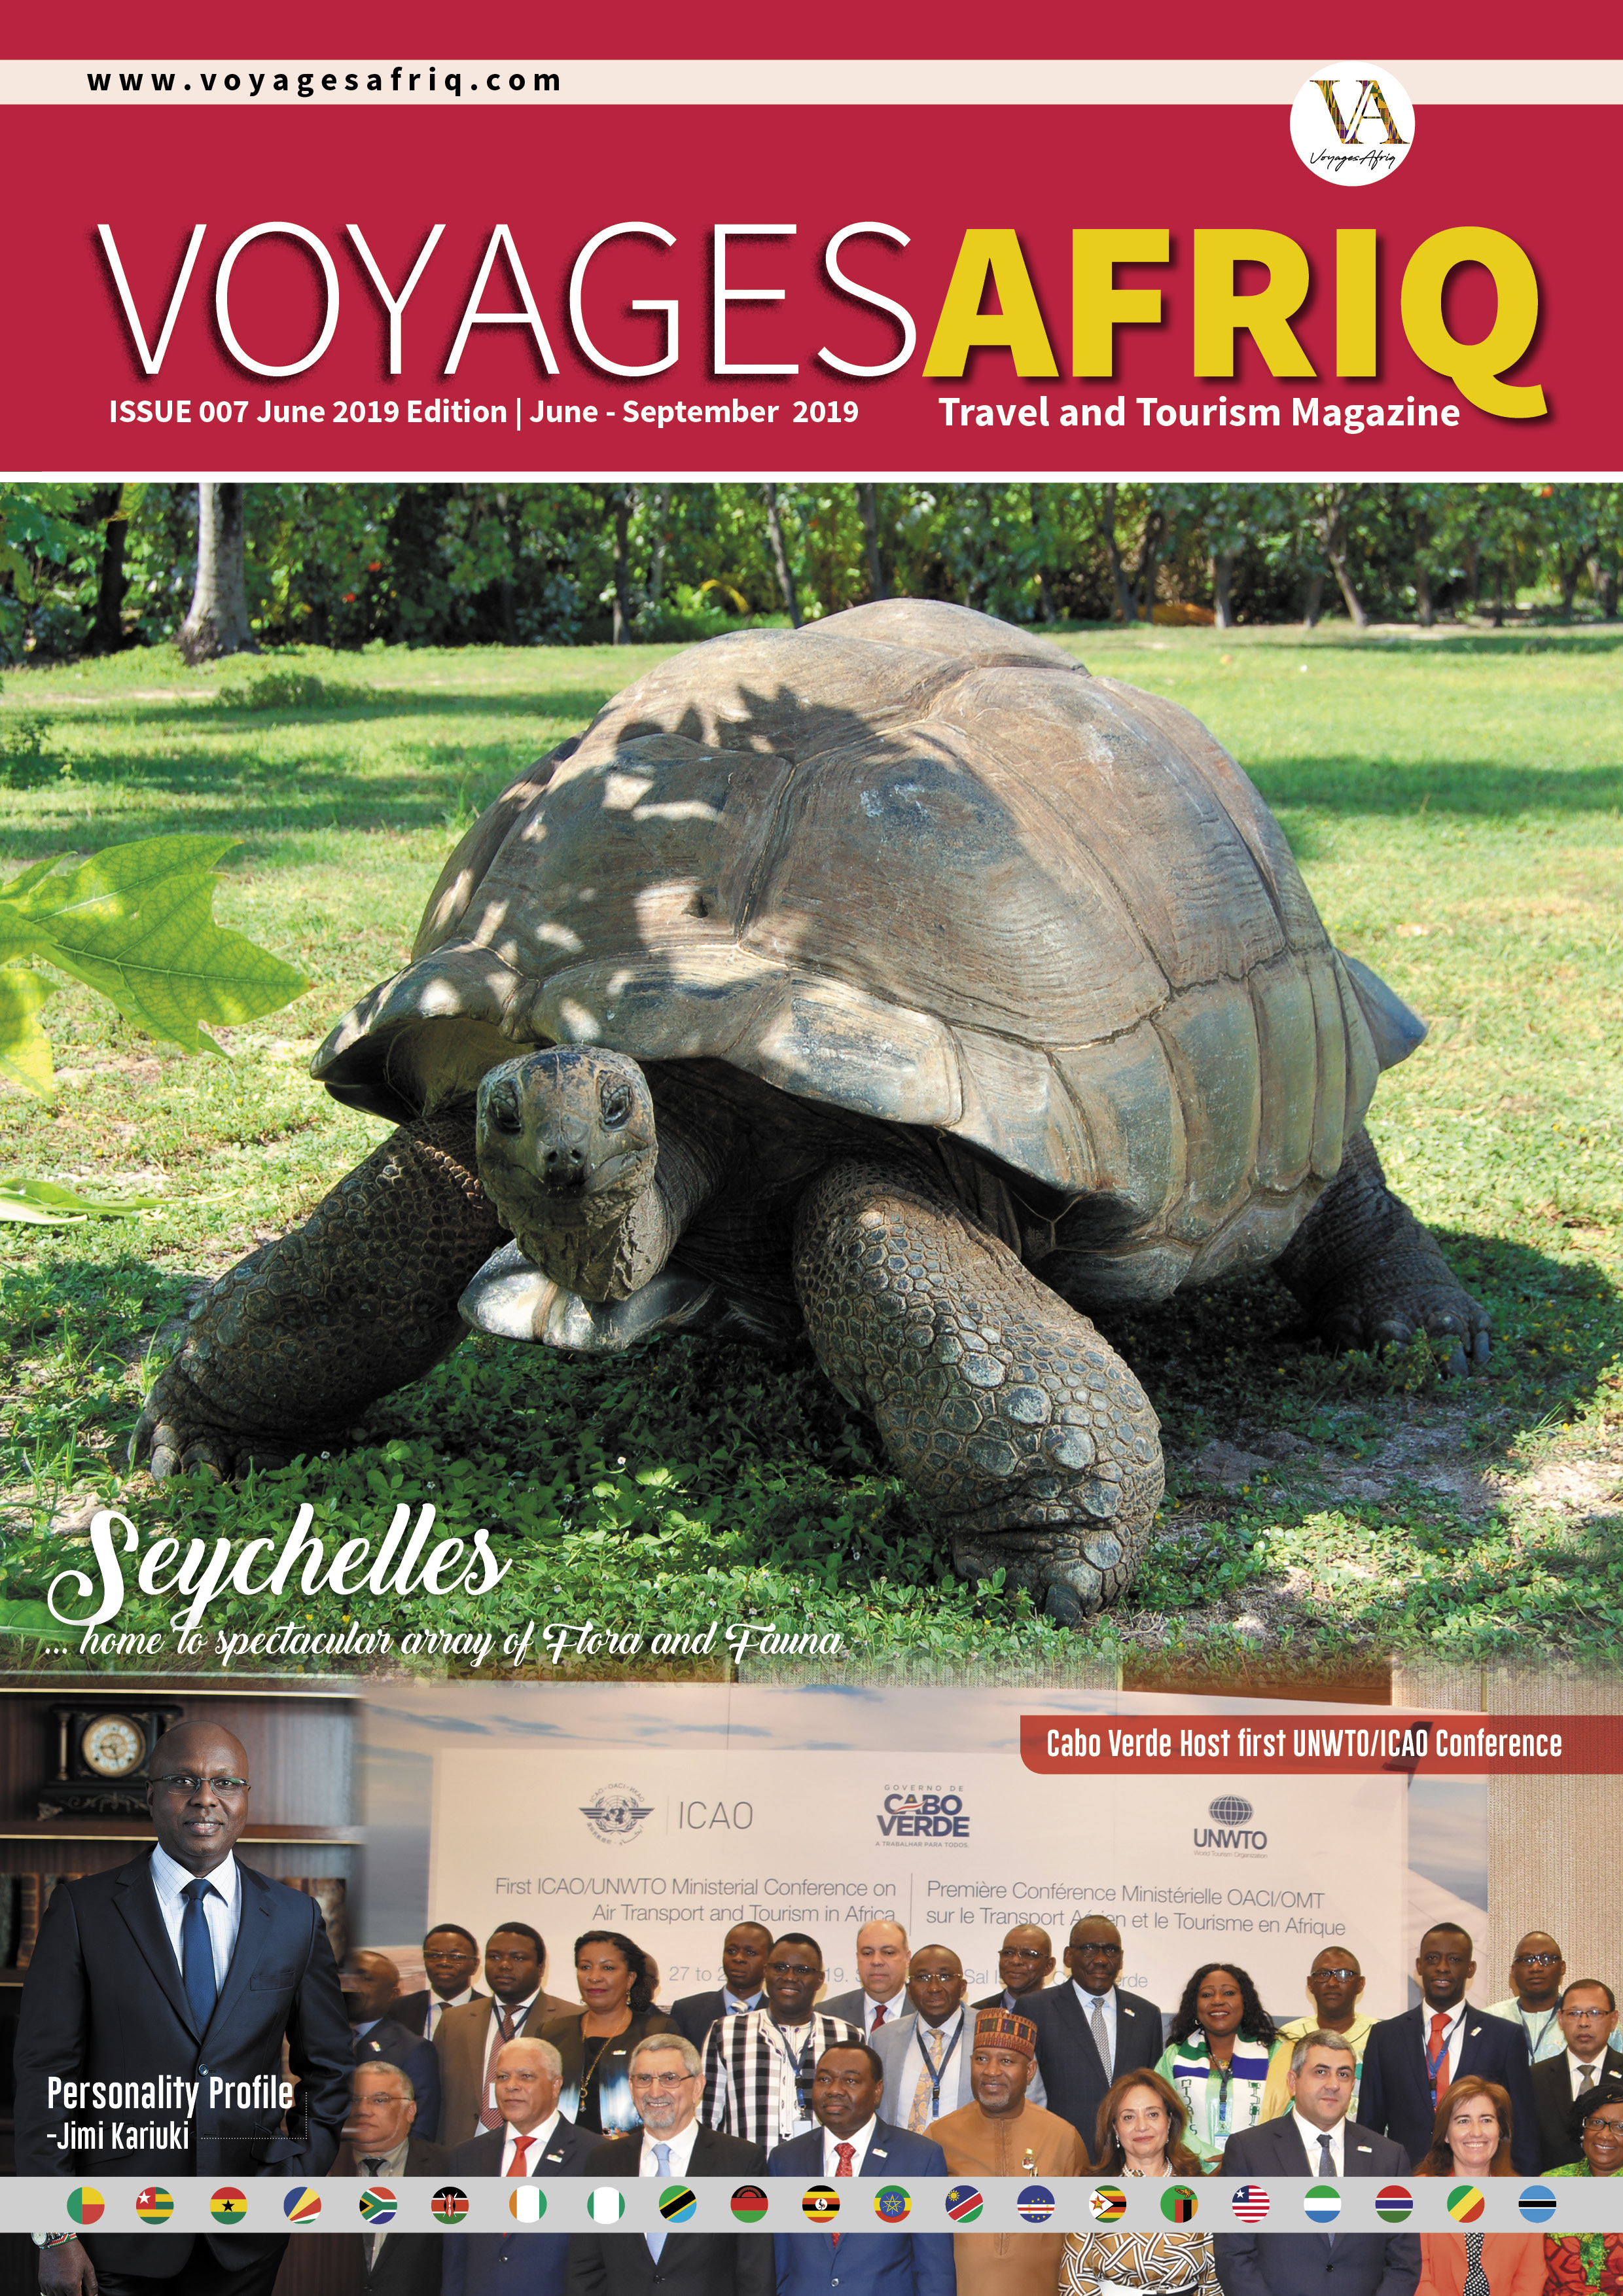 Eighth edition of VoyagesAfriq Travel Magazine out with exclusive contents